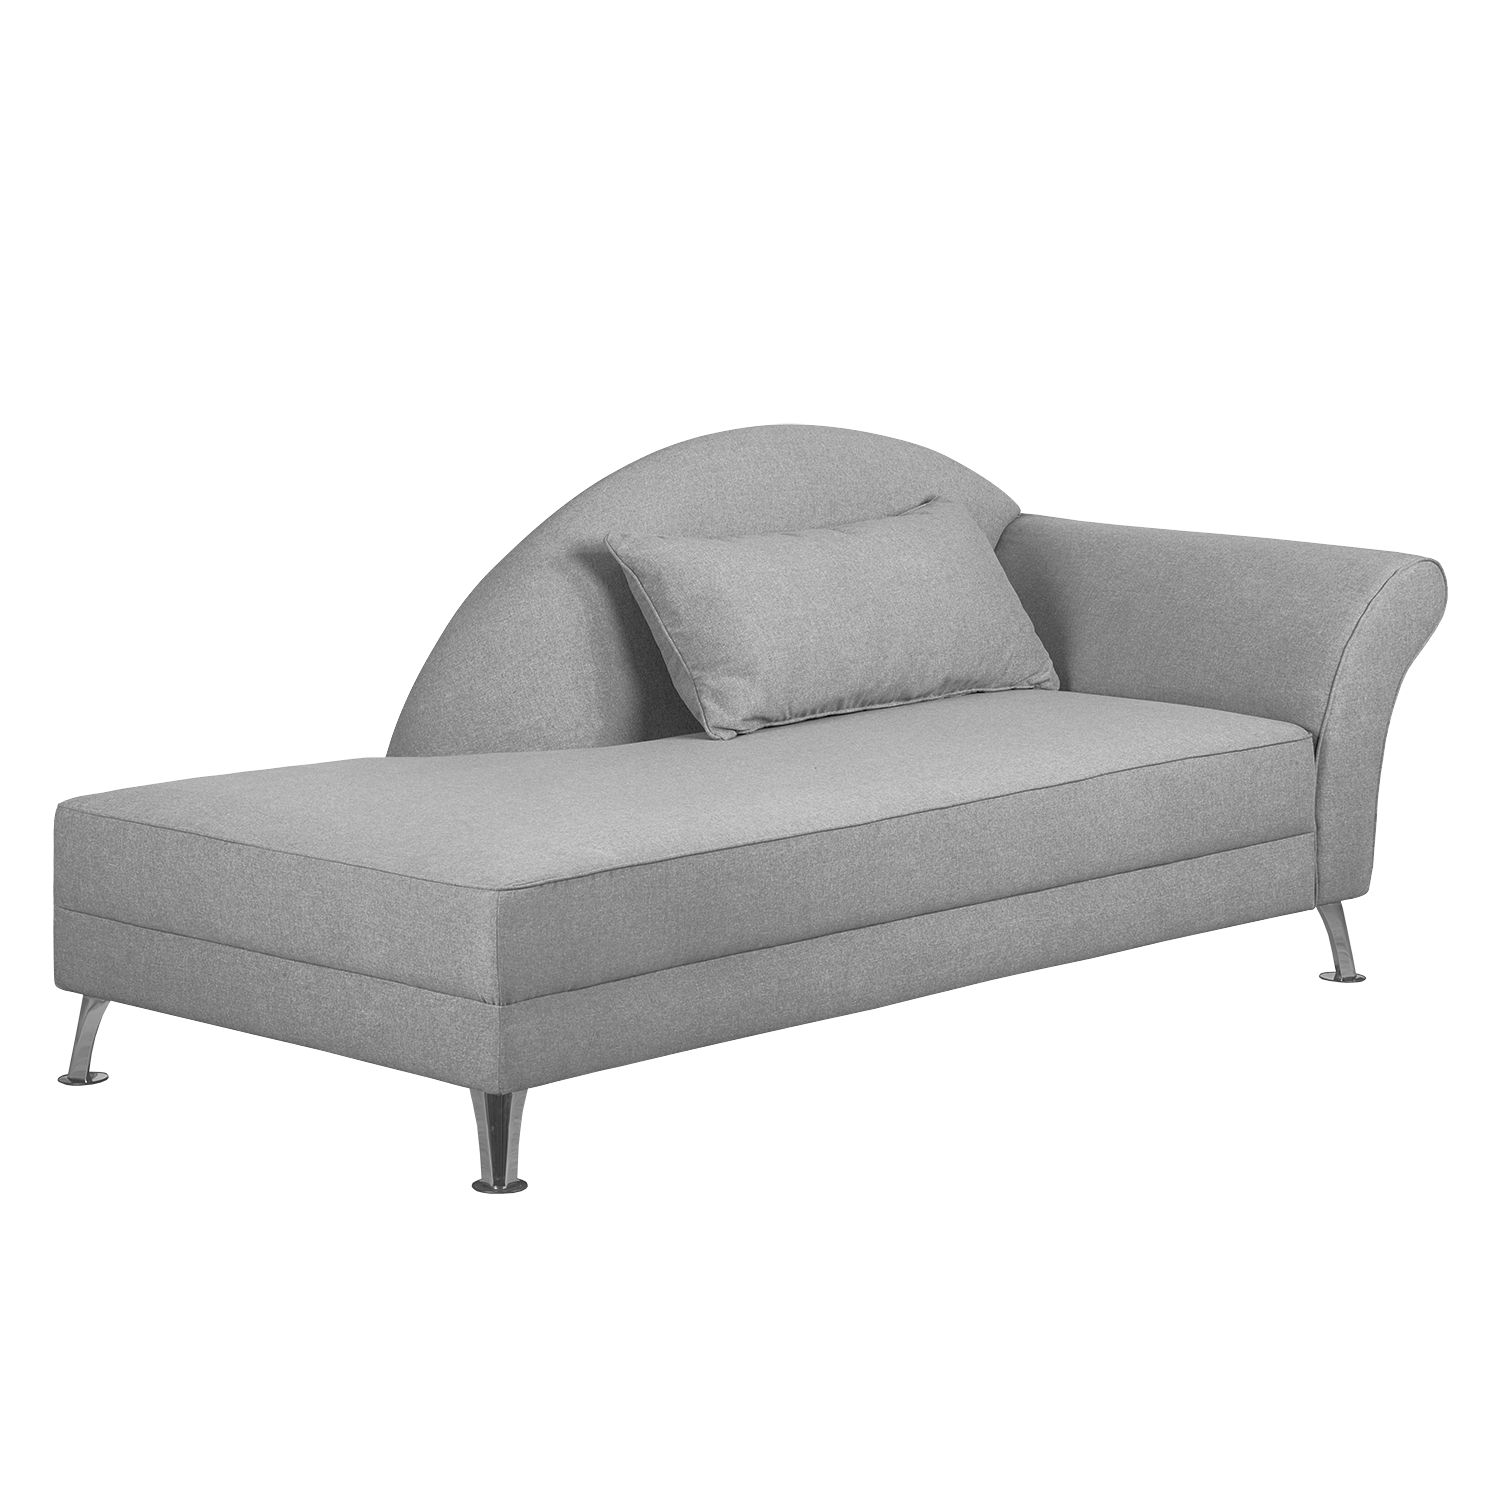 Chaise longue kopen online internetwinkel for Chaise longue online